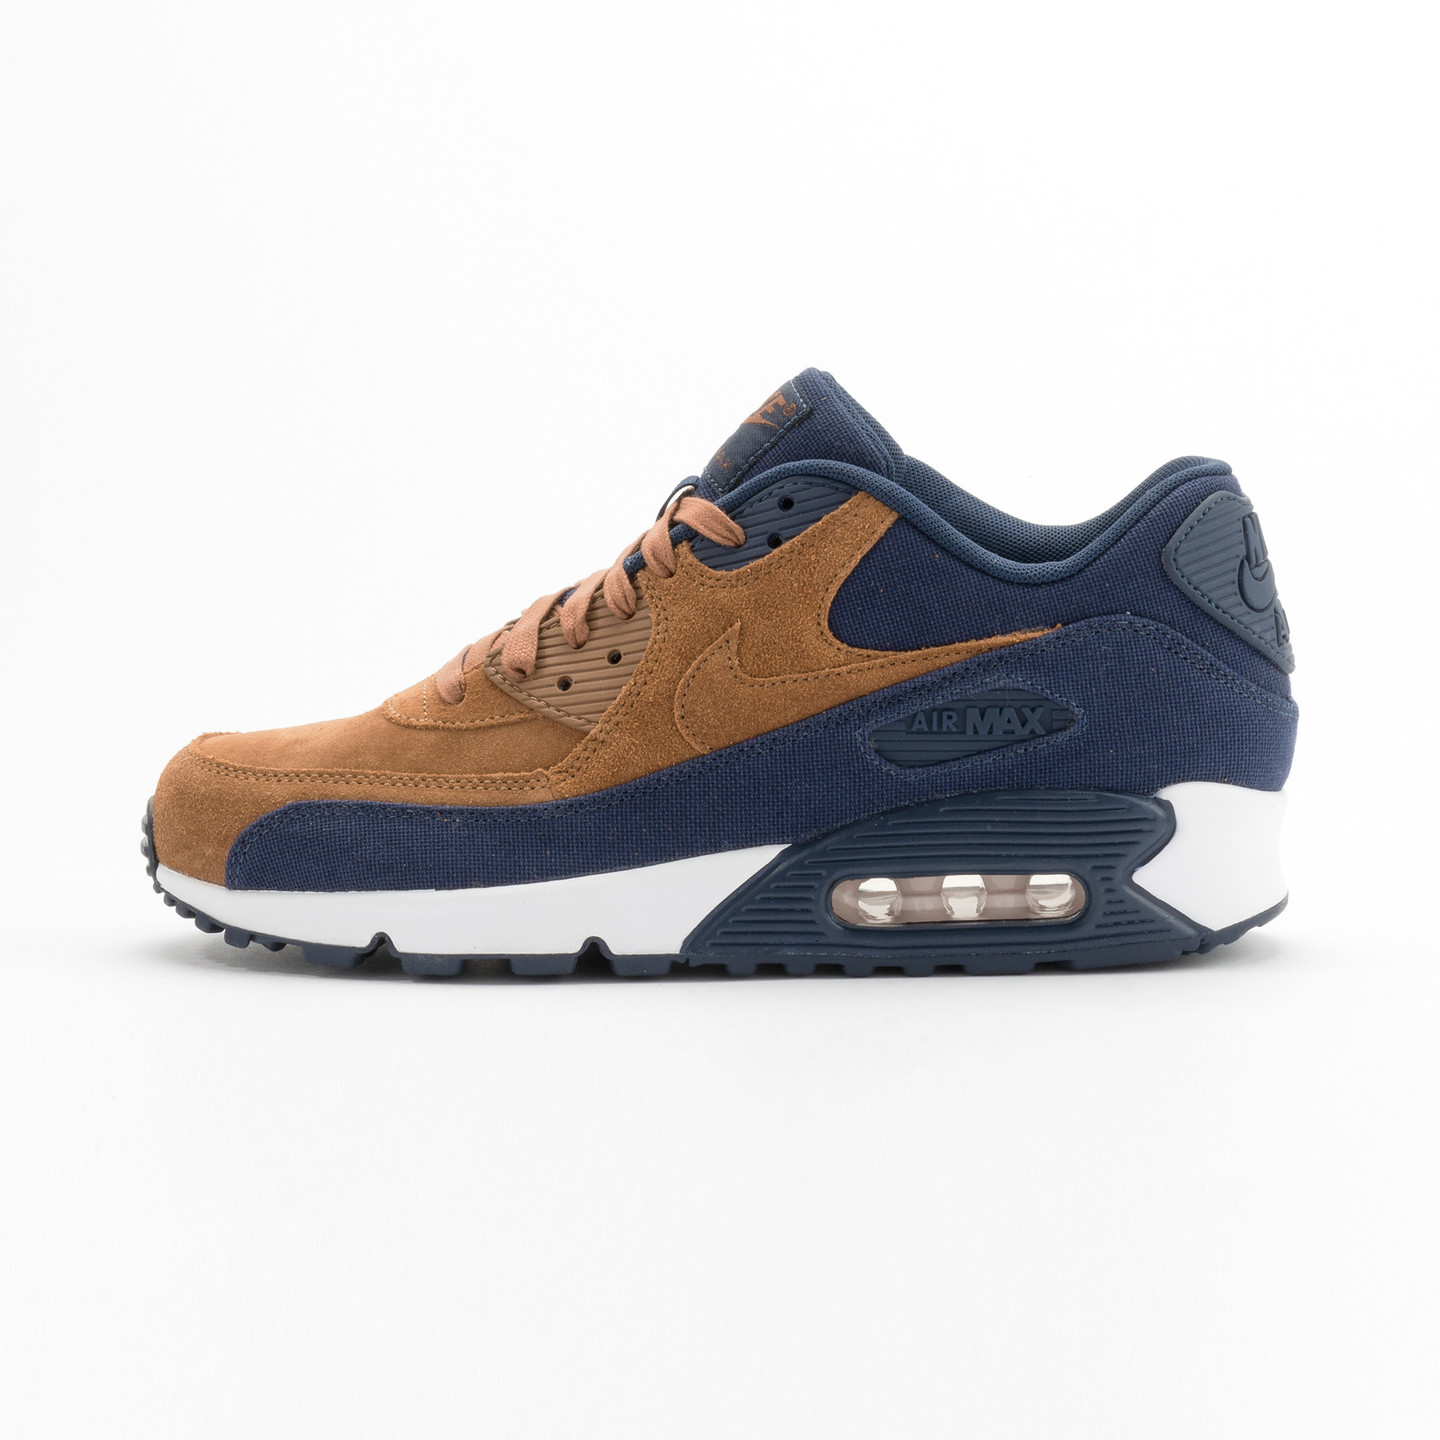 Nike Air Max 90 Premium Ale Brown / Midnight Navy 700155-201-42